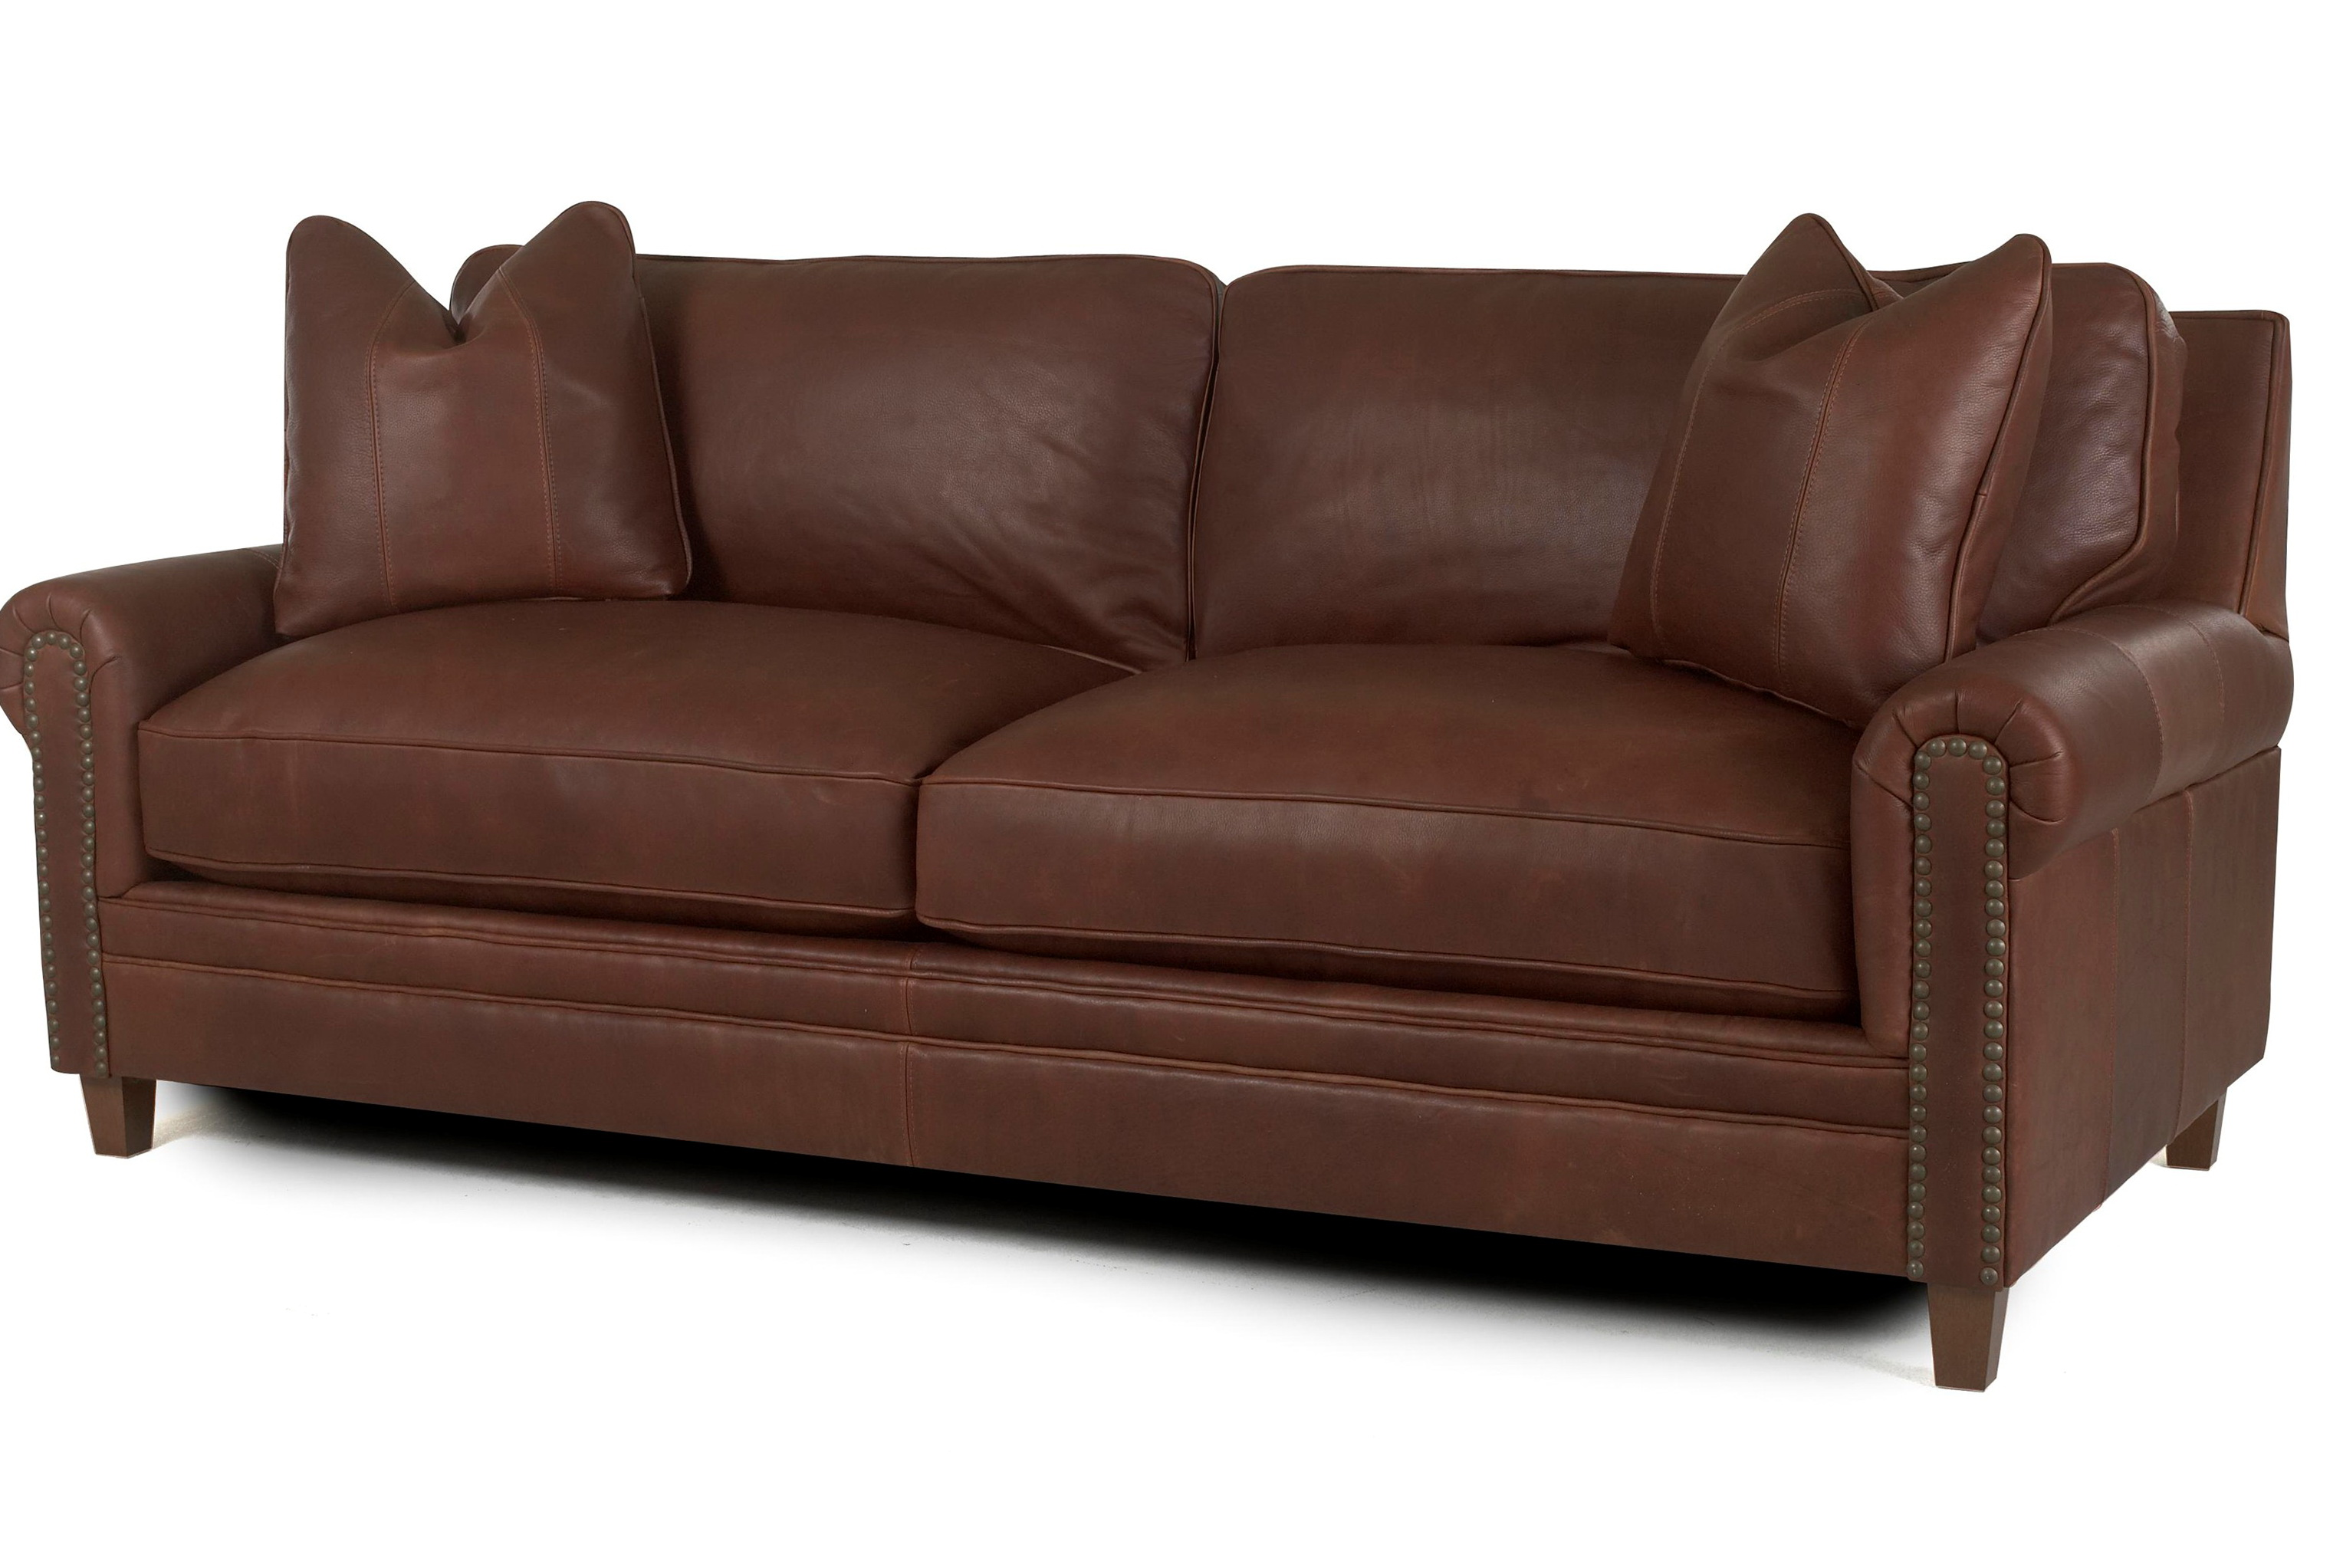 Leather Sleeper Sofa Queen